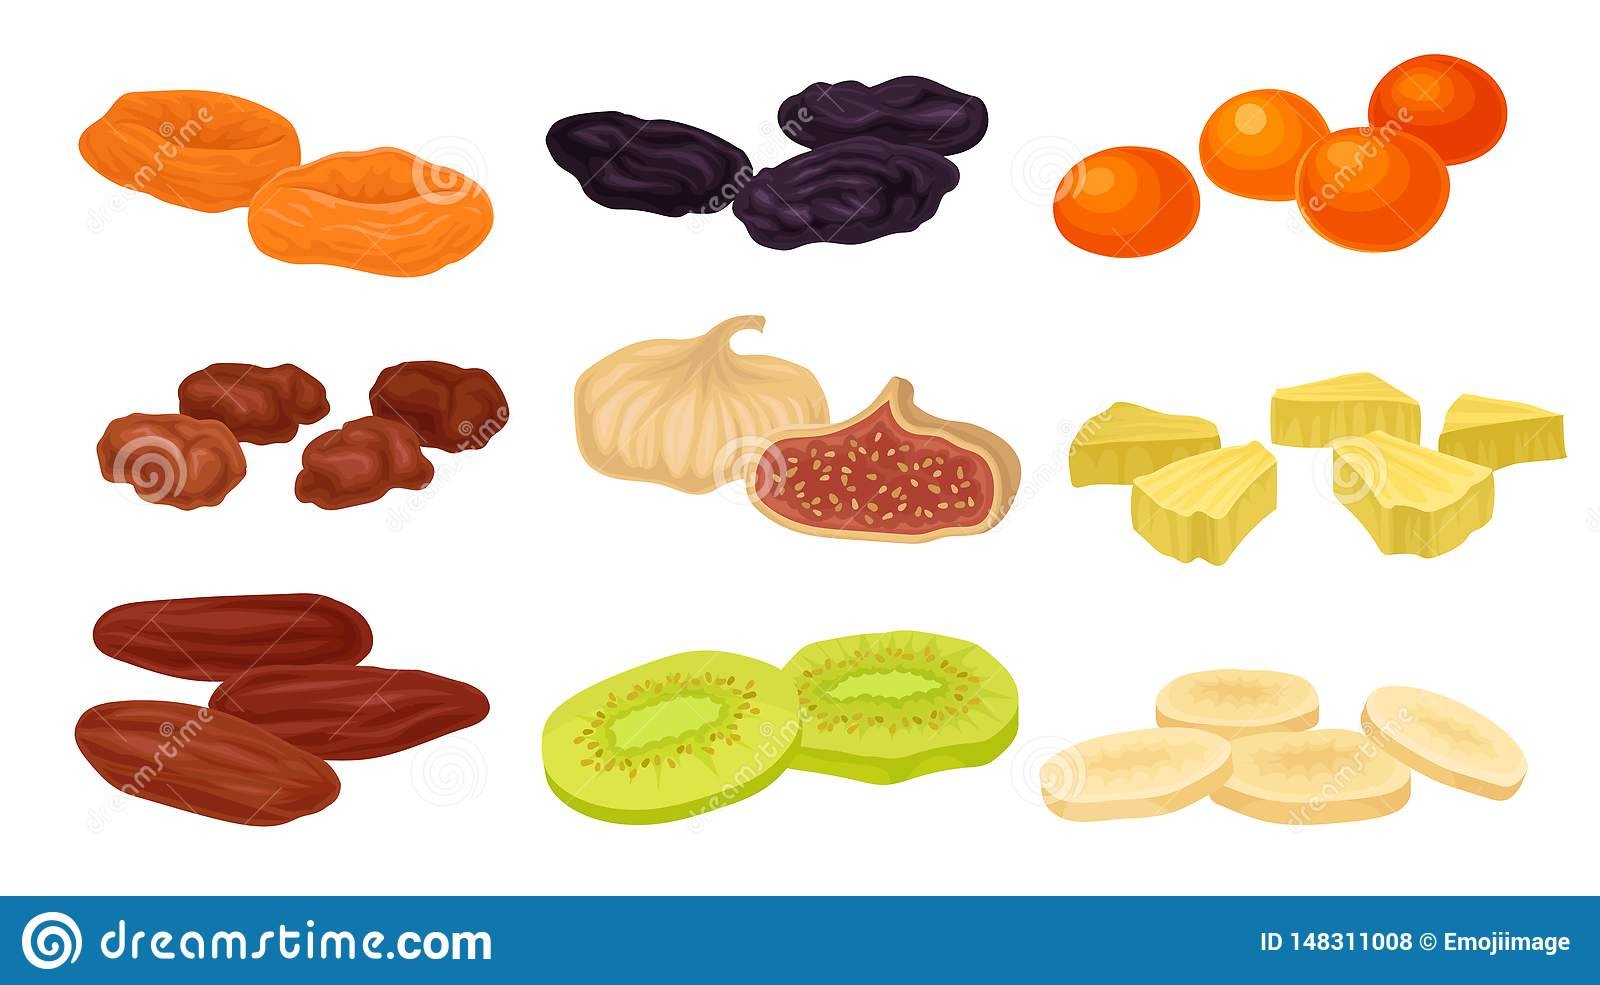 Set of images of various dried fruits. Vector illustration on white background.